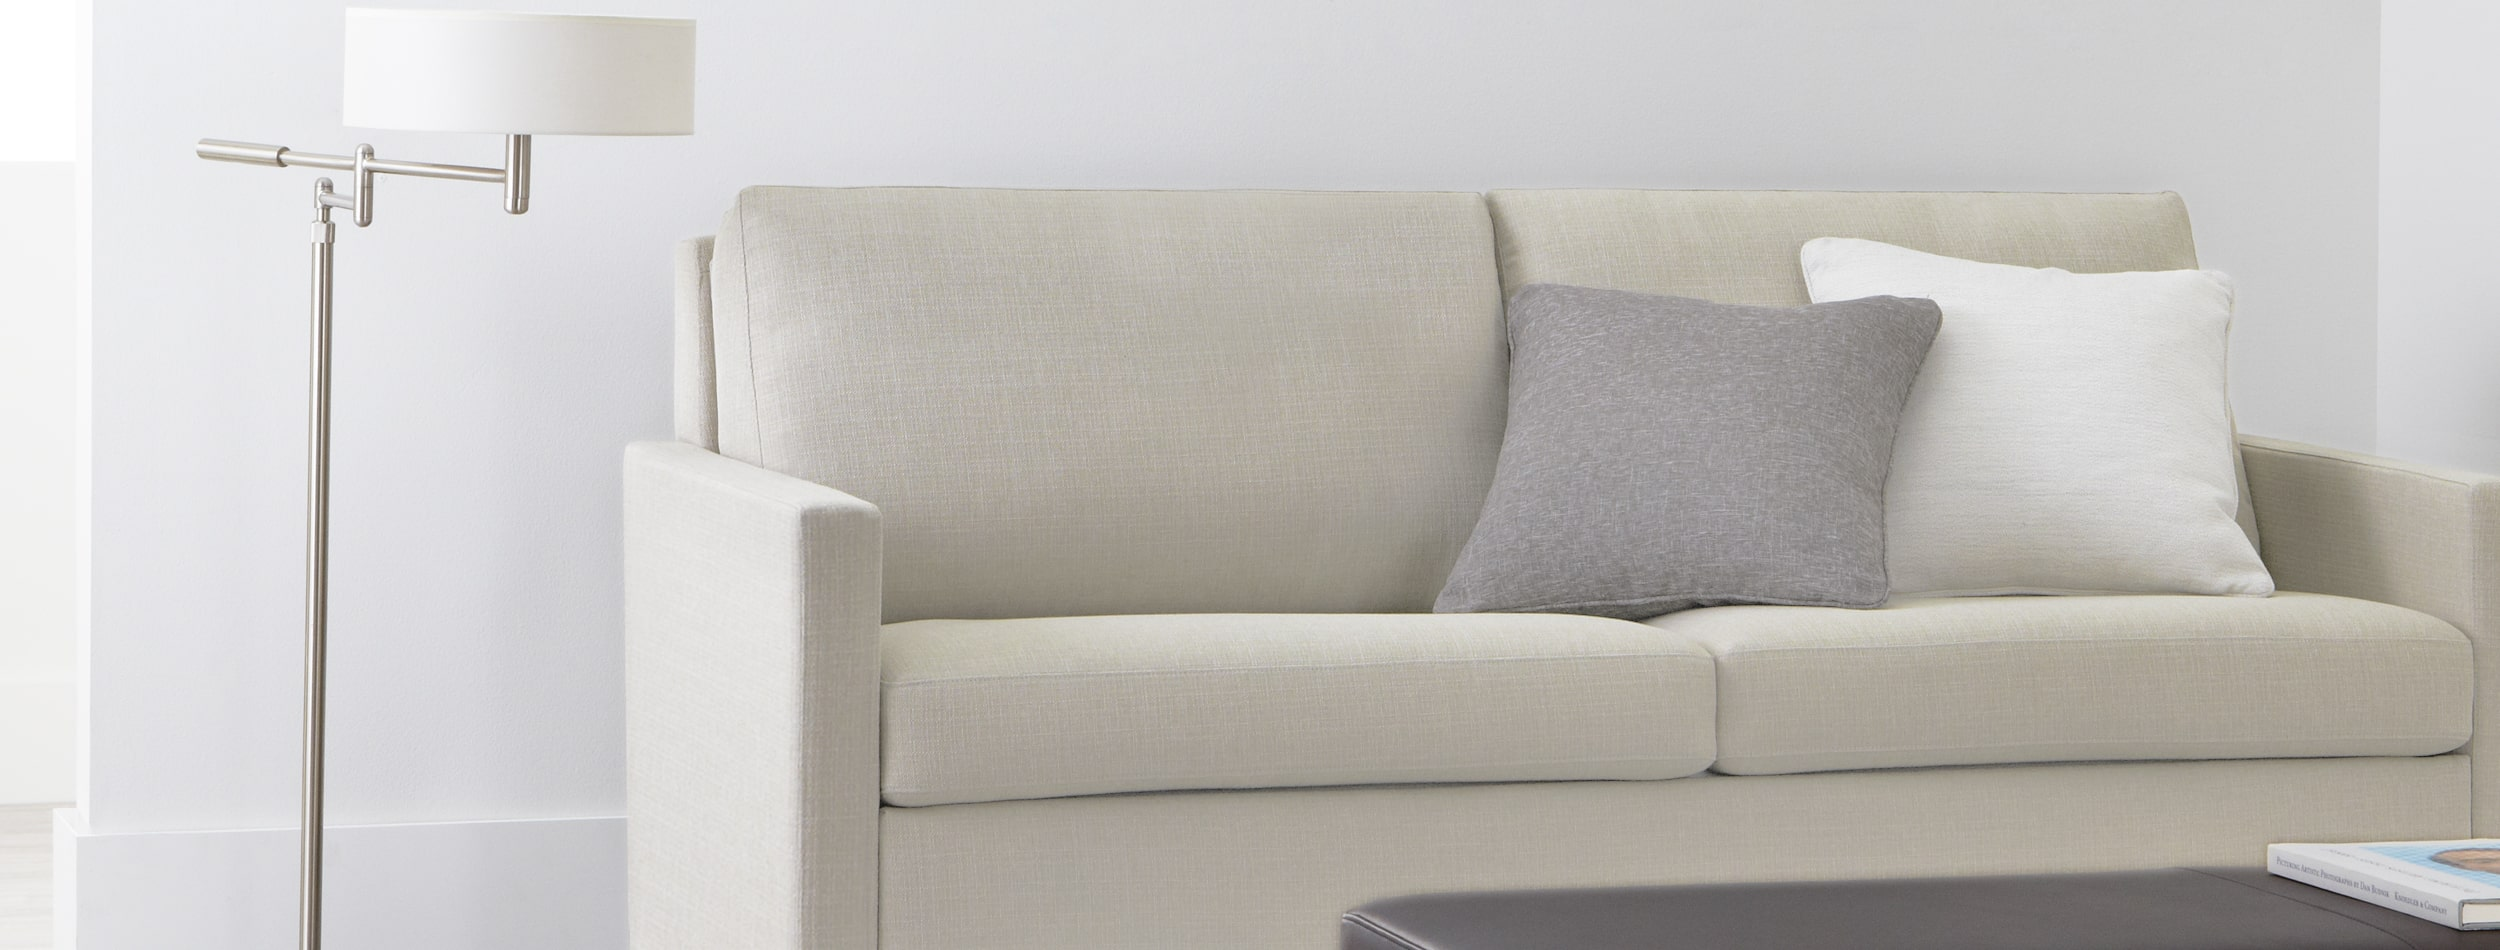 american sofa sleeper best makers in bangalore bedroom and more leather comfort